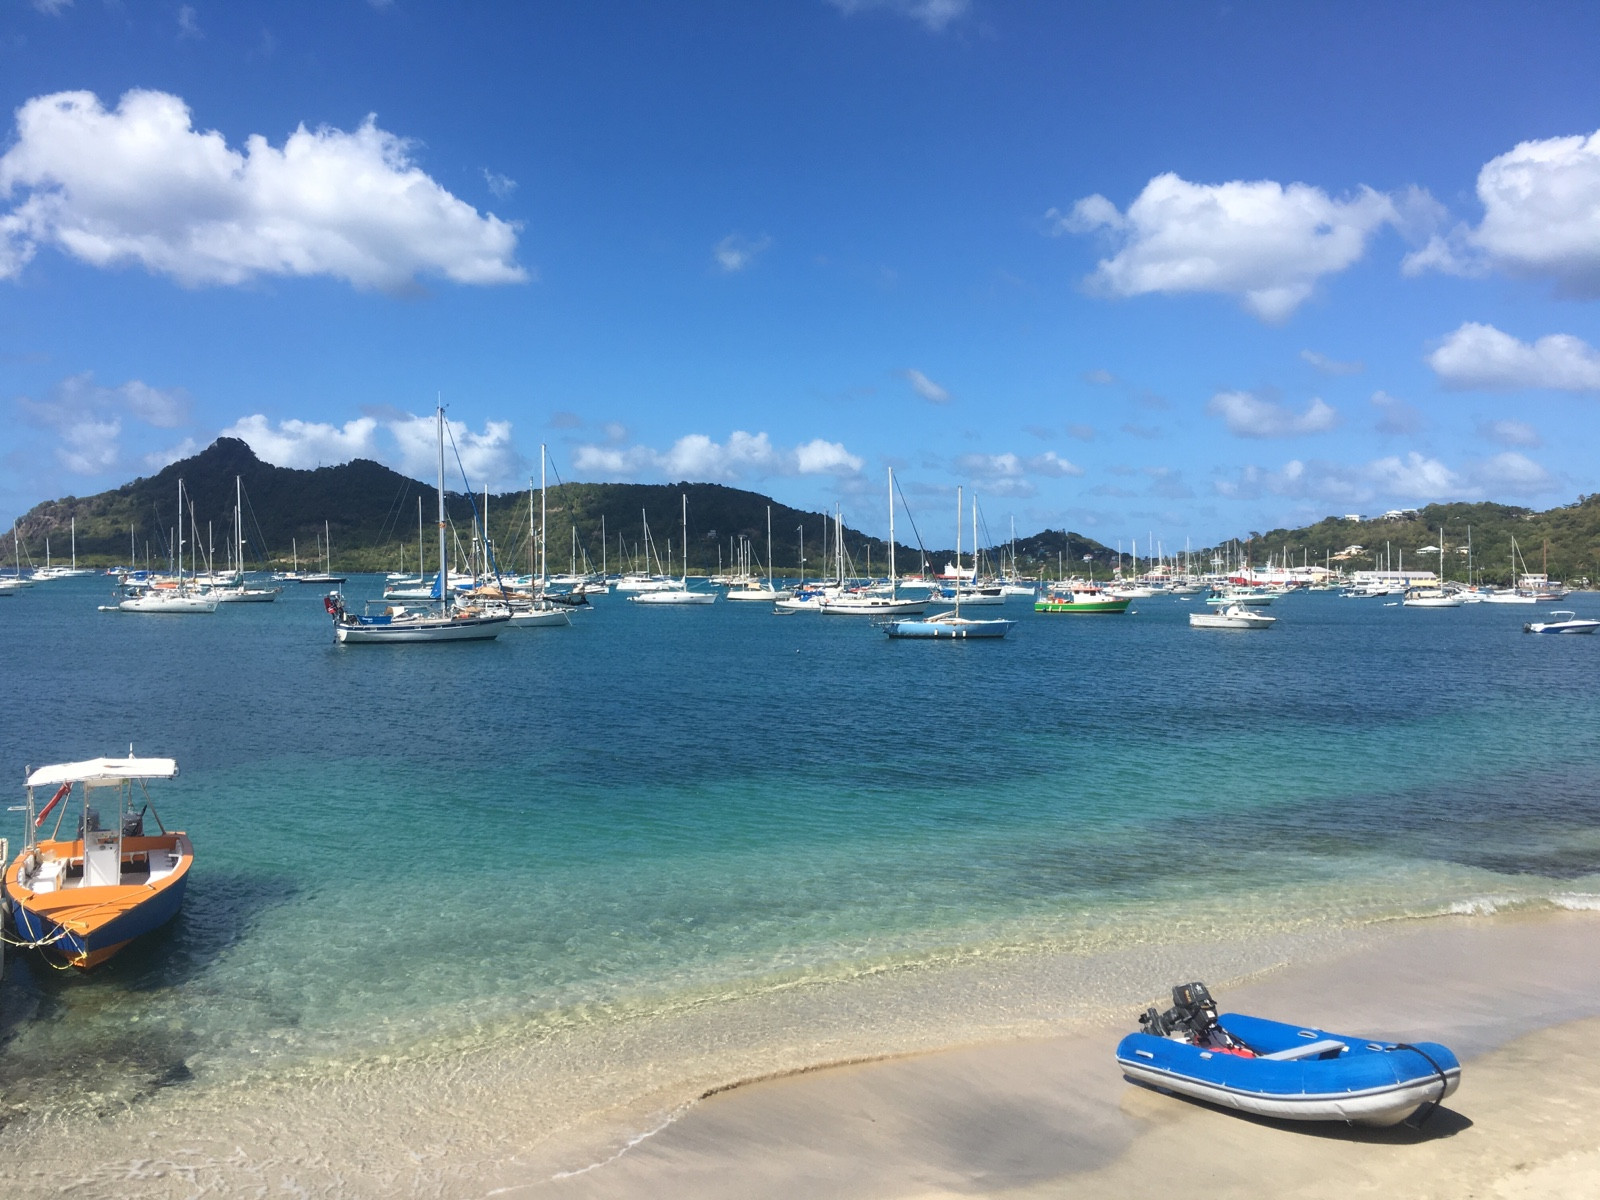 Carriacou and Petite Martinique